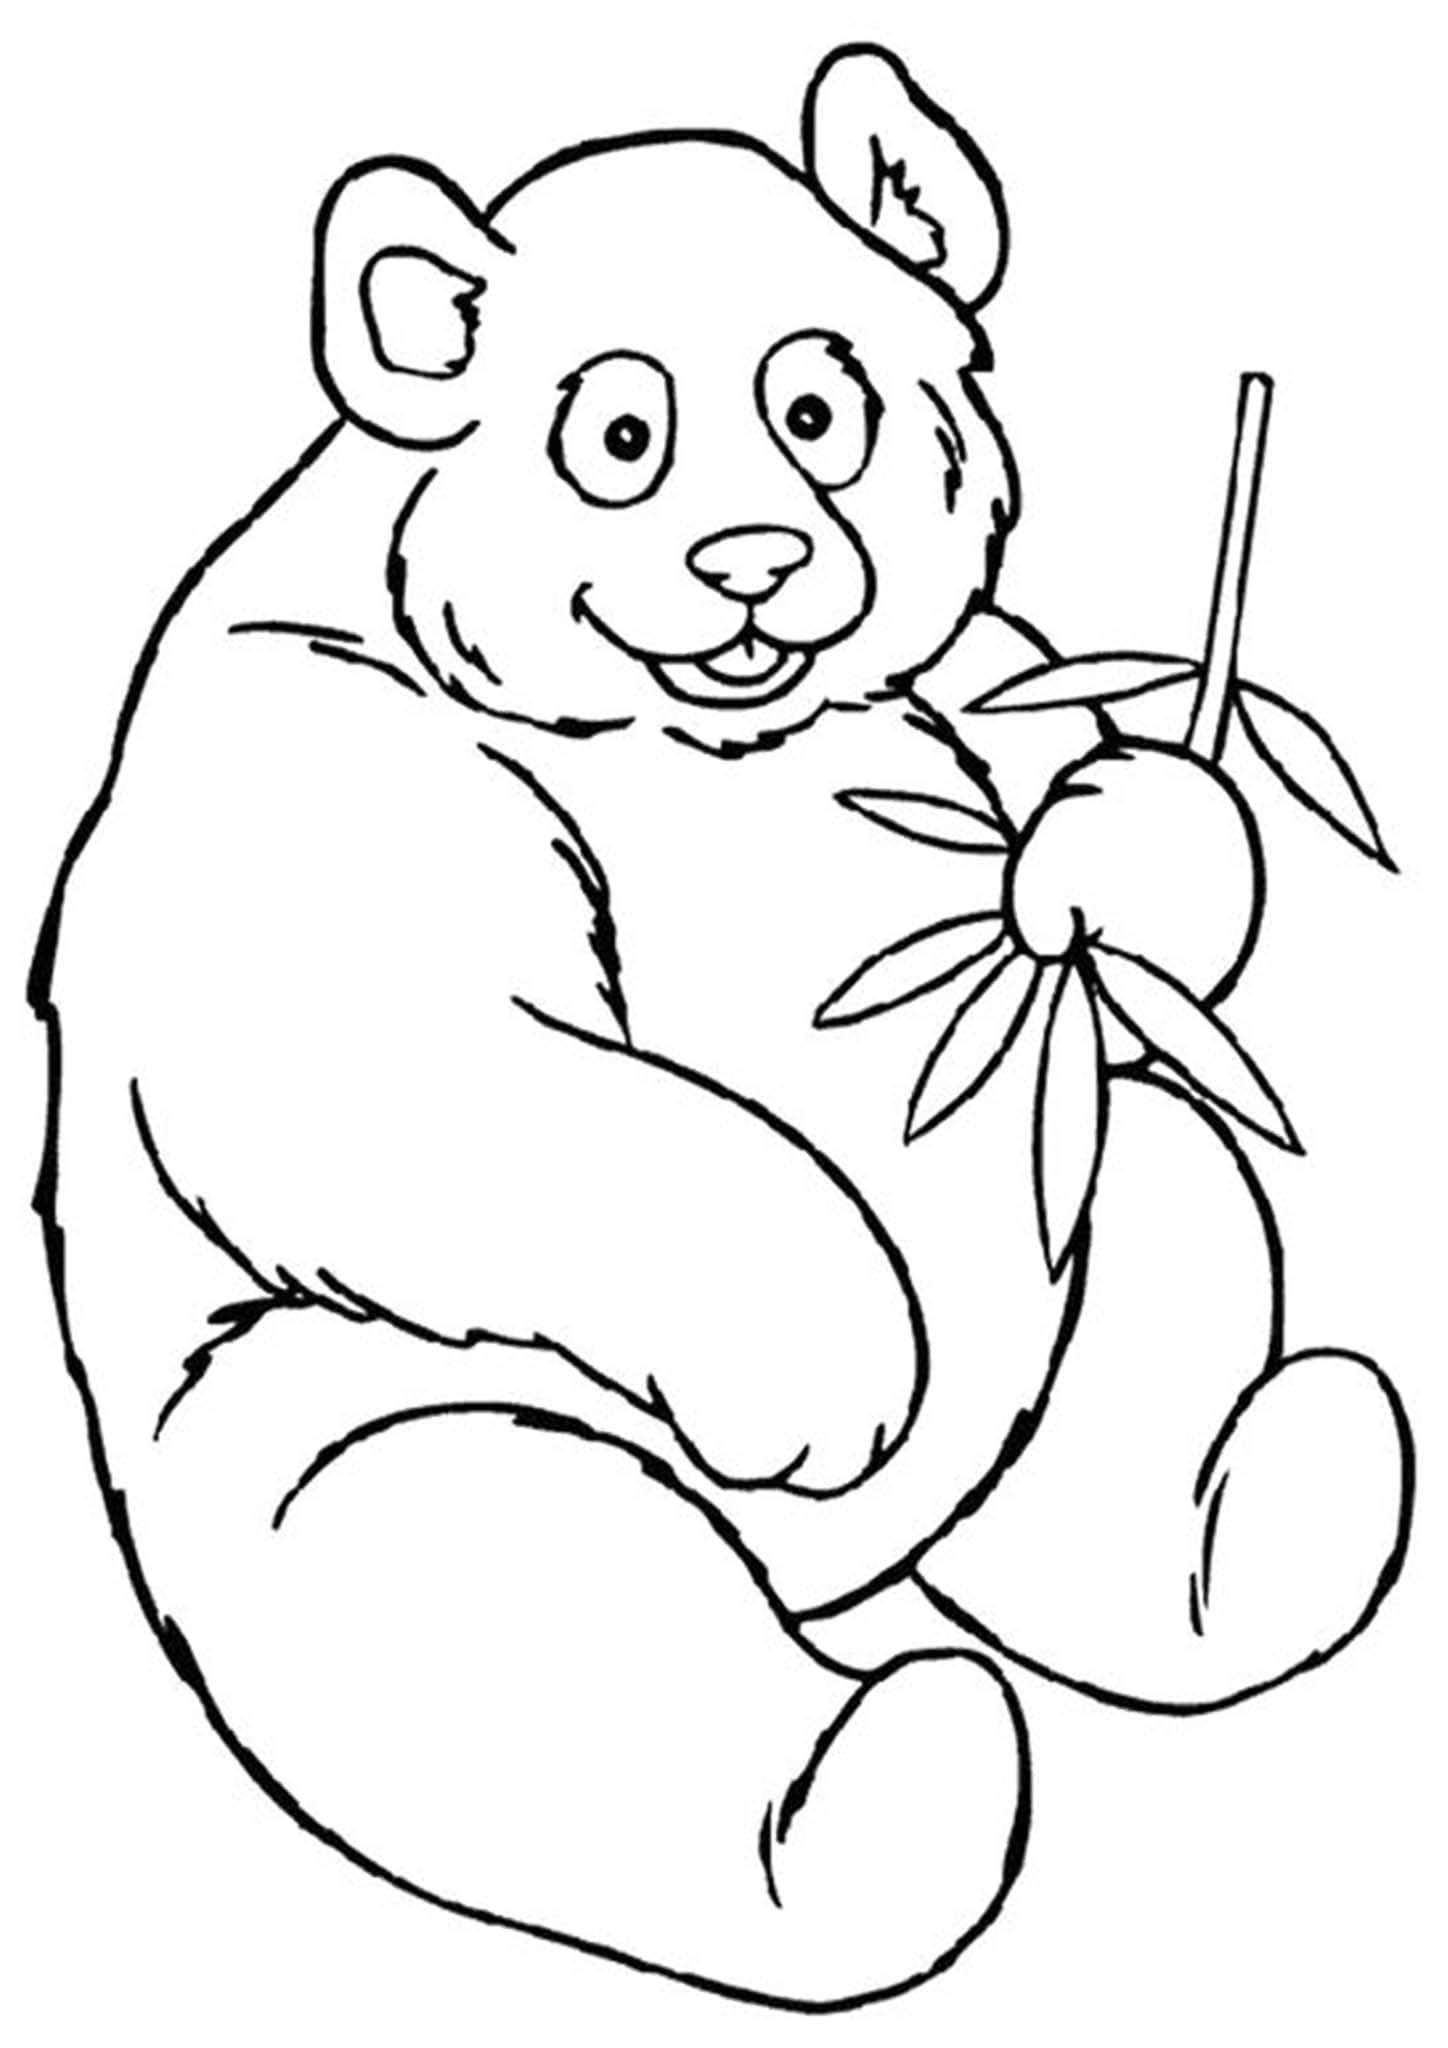 simple panda coloring pages free easy to print panda coloring pages in 2020 panda pages panda coloring simple